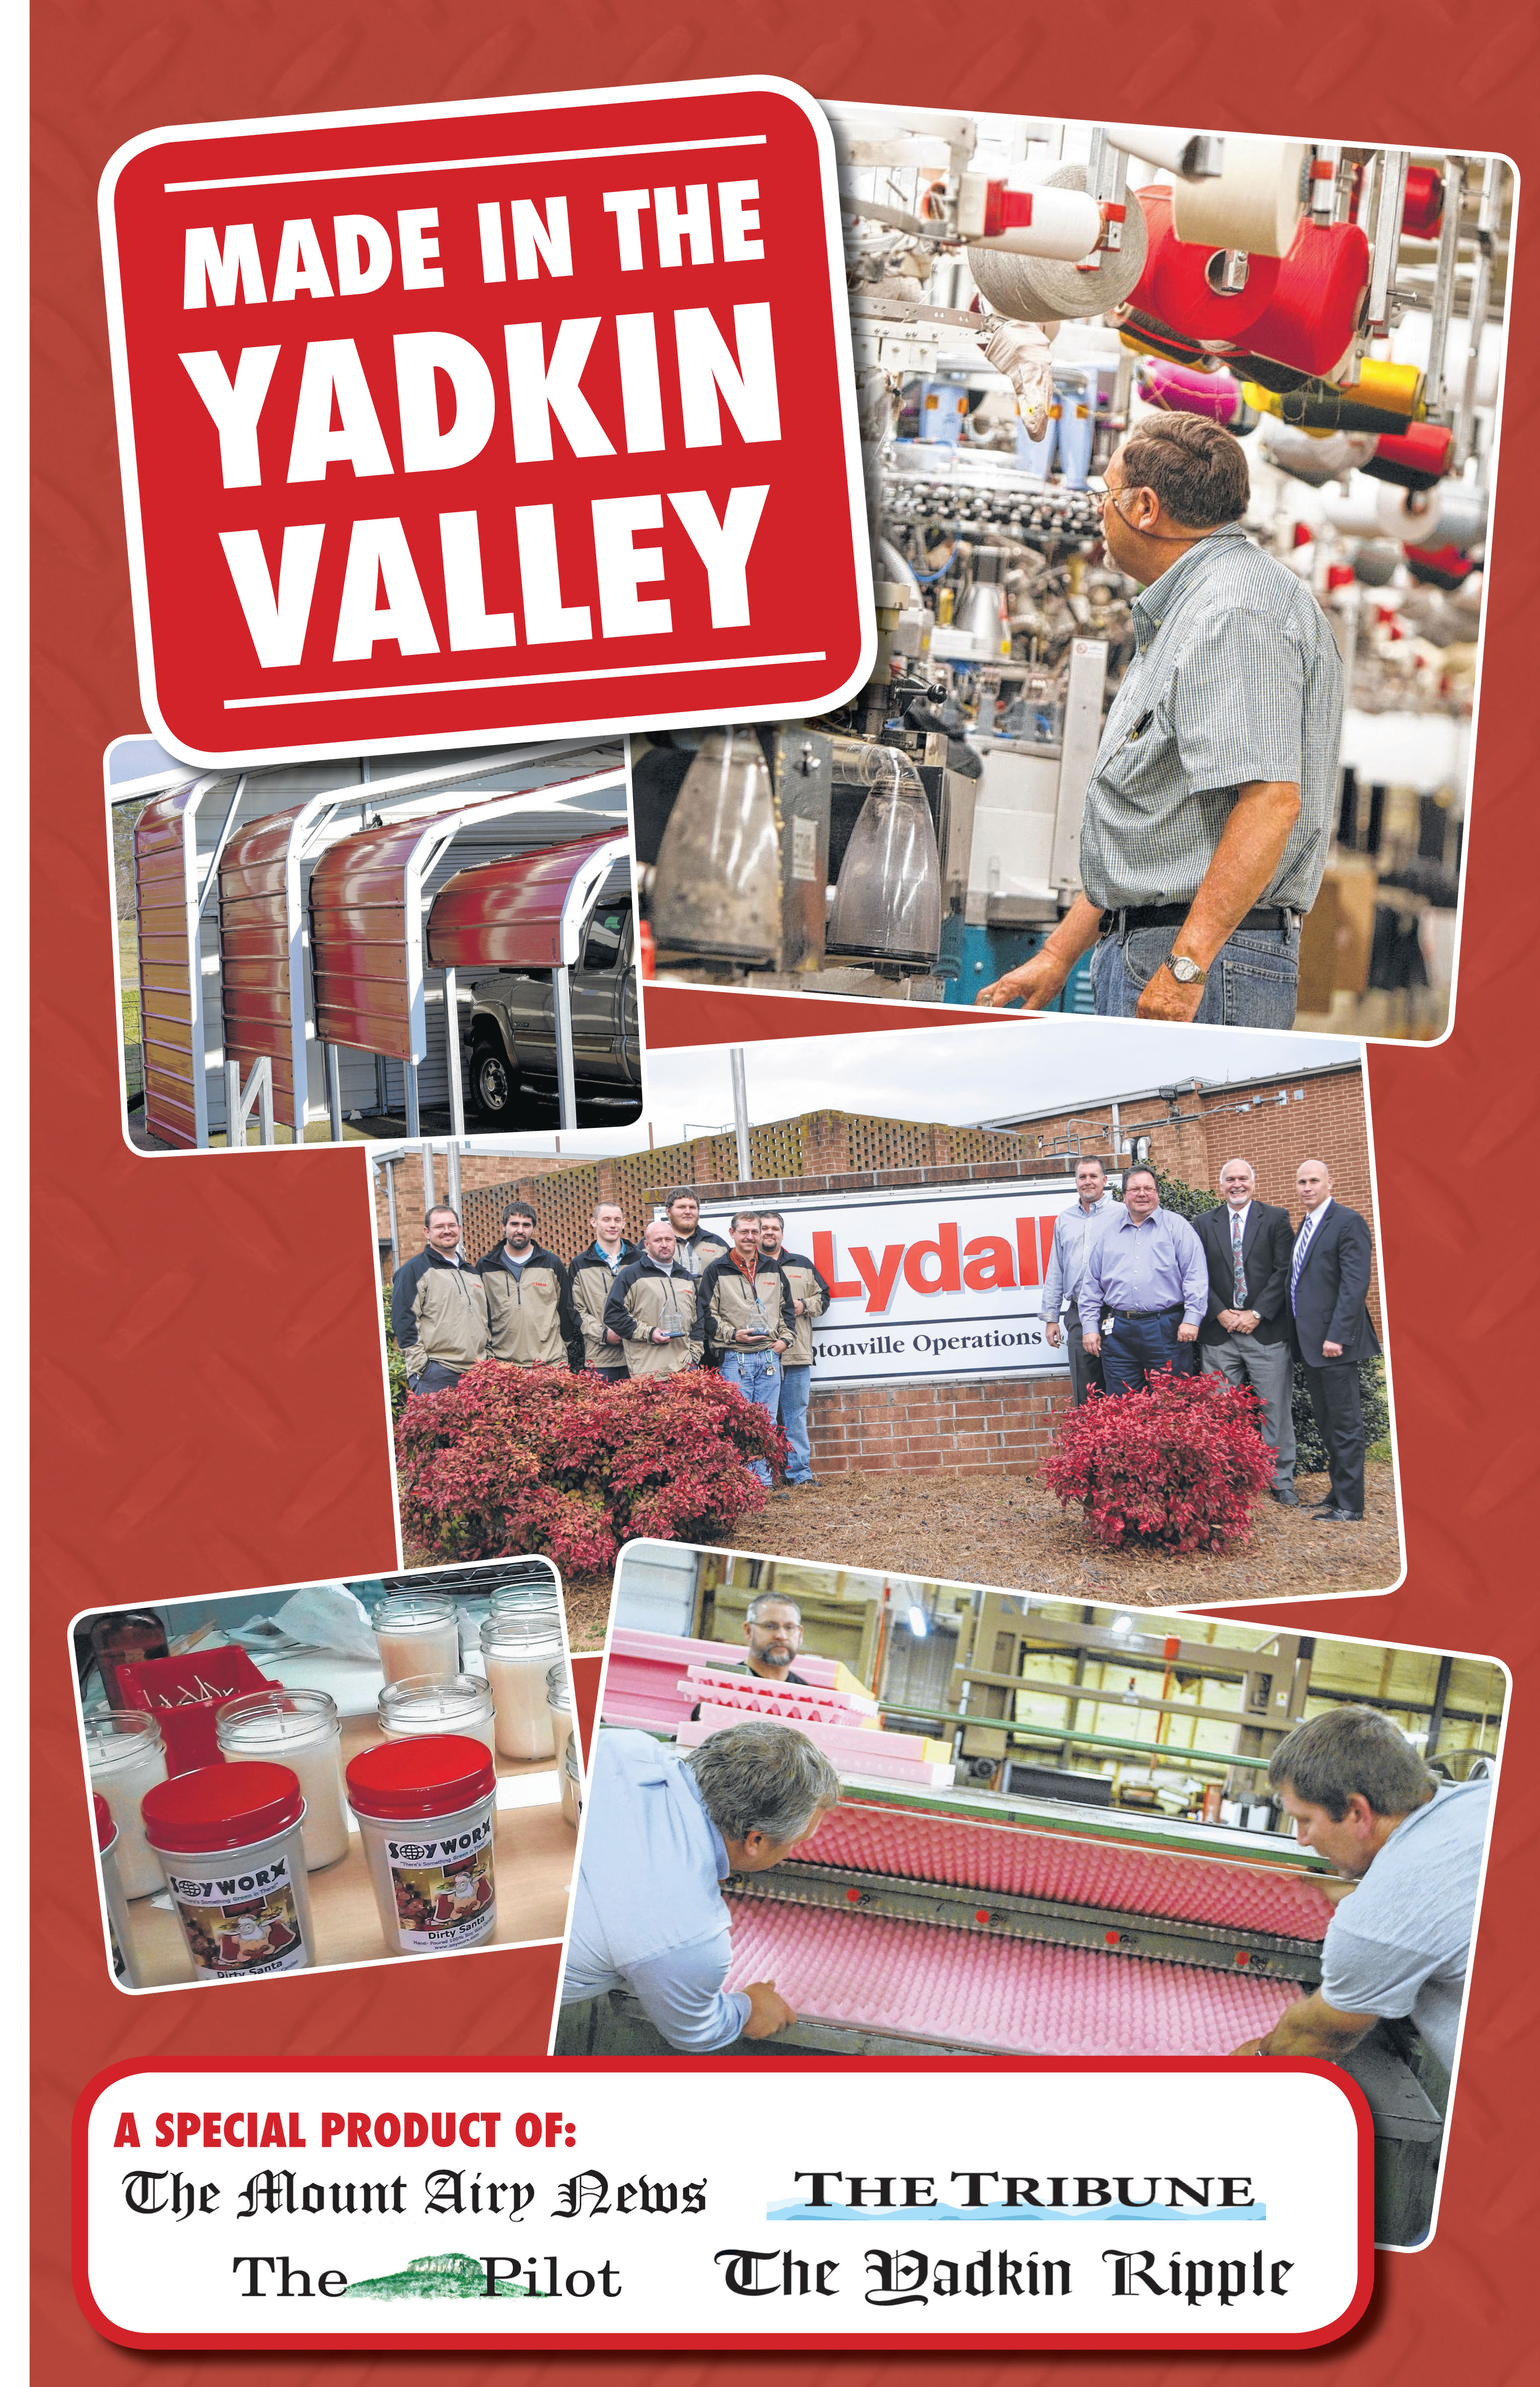 Made in the Yadkin Valley